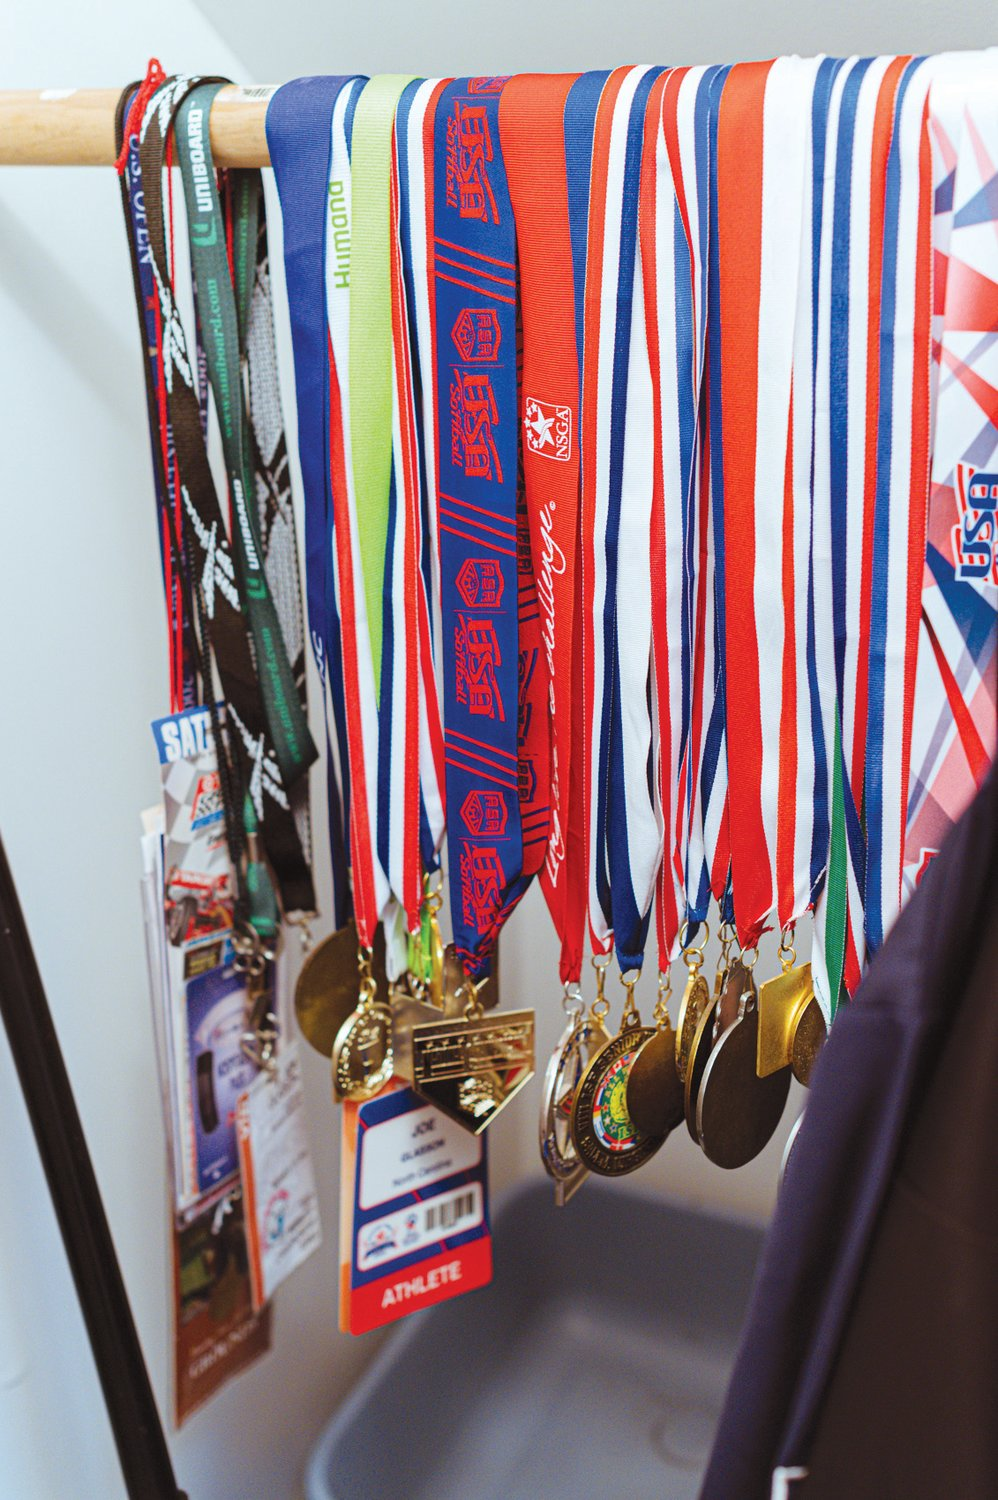 Glasson keeps a closet's worth of plaques, medals and jackets from his various softball championships.